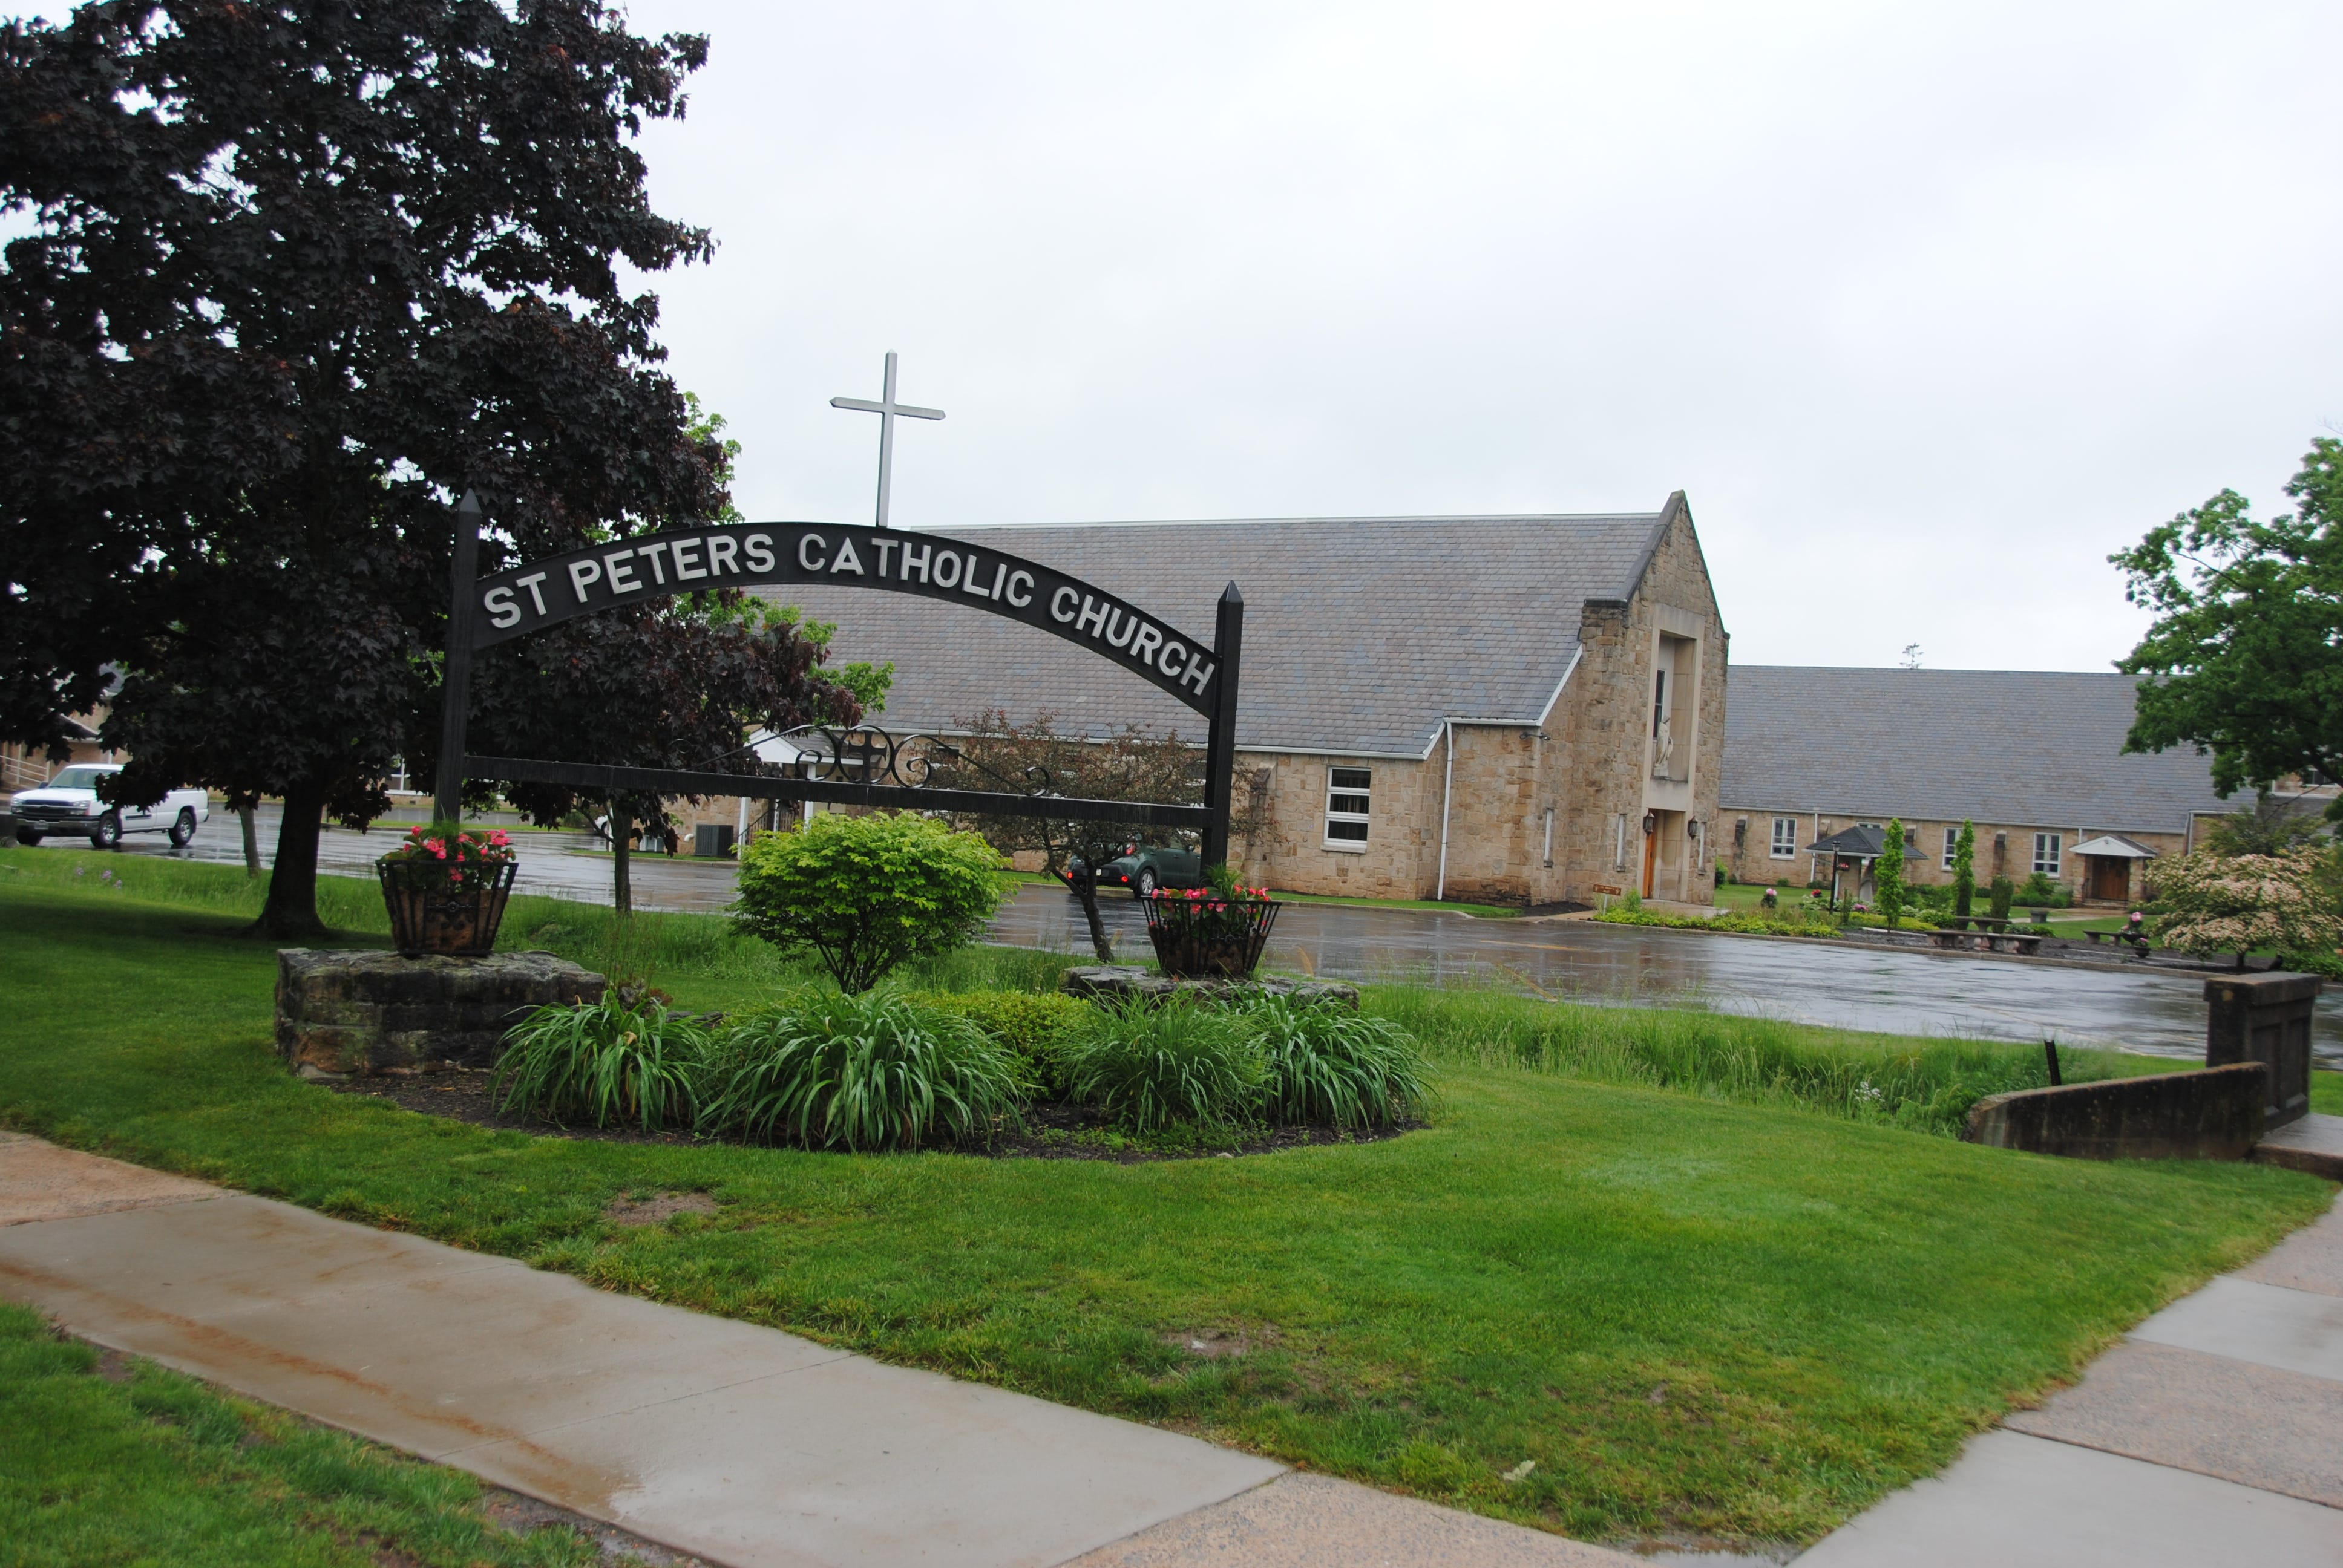 Janet and Marisa Shuglie may have been walking toward St. Peter's Catholic Church in Somerset before they disappeared in 1985.